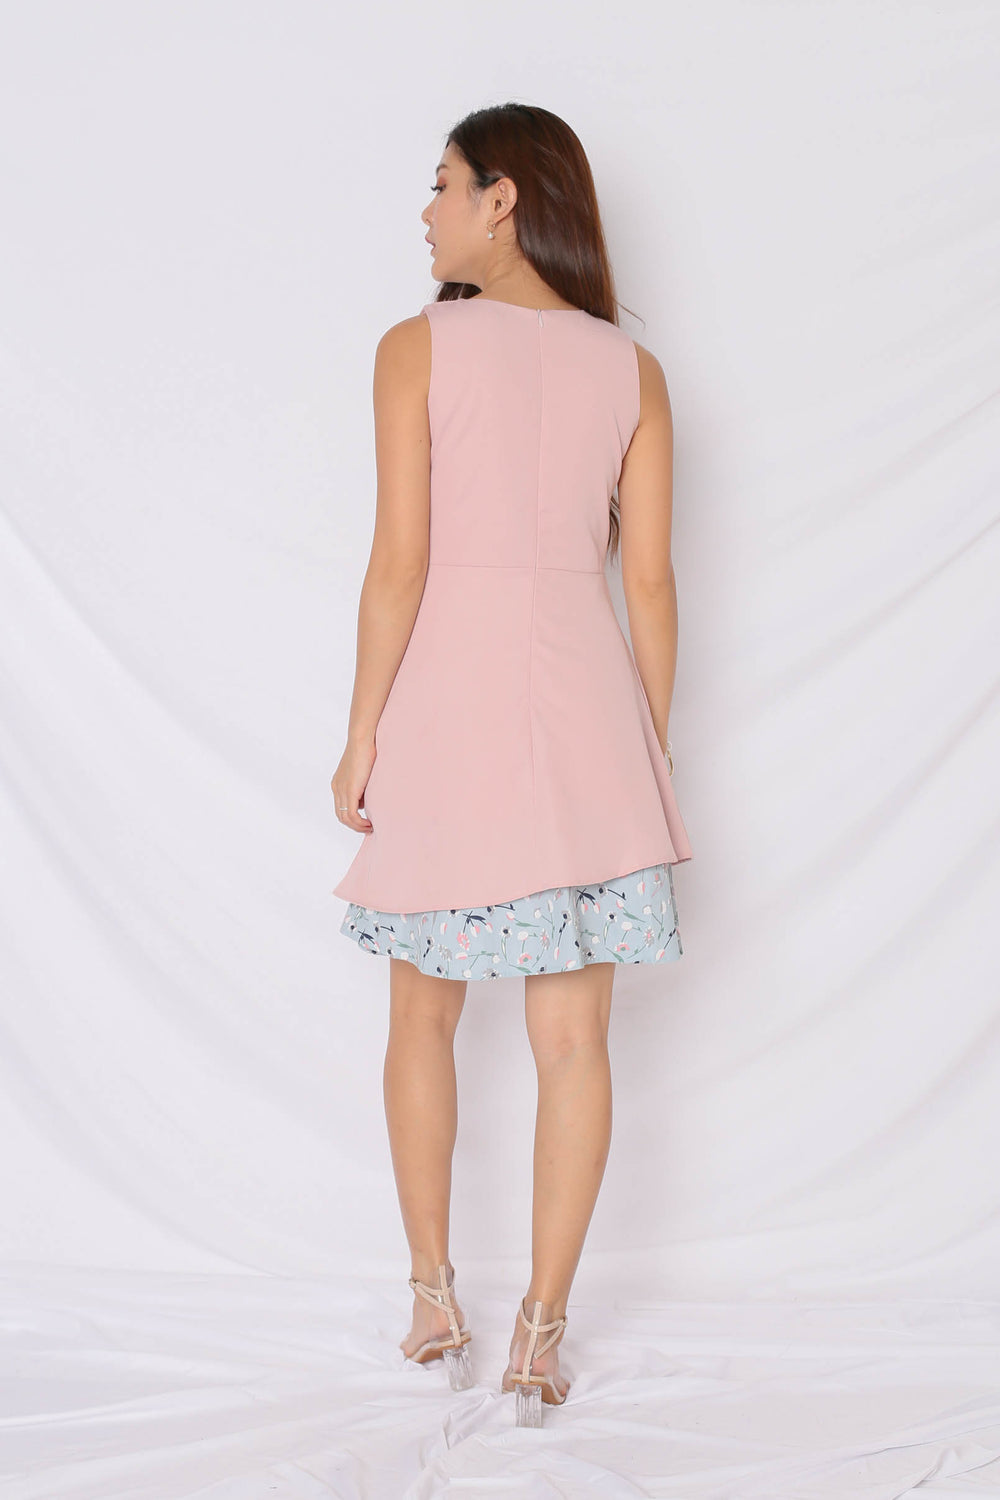 *TPZ* (PREMIUM) EYNNA DRESS IN PINK